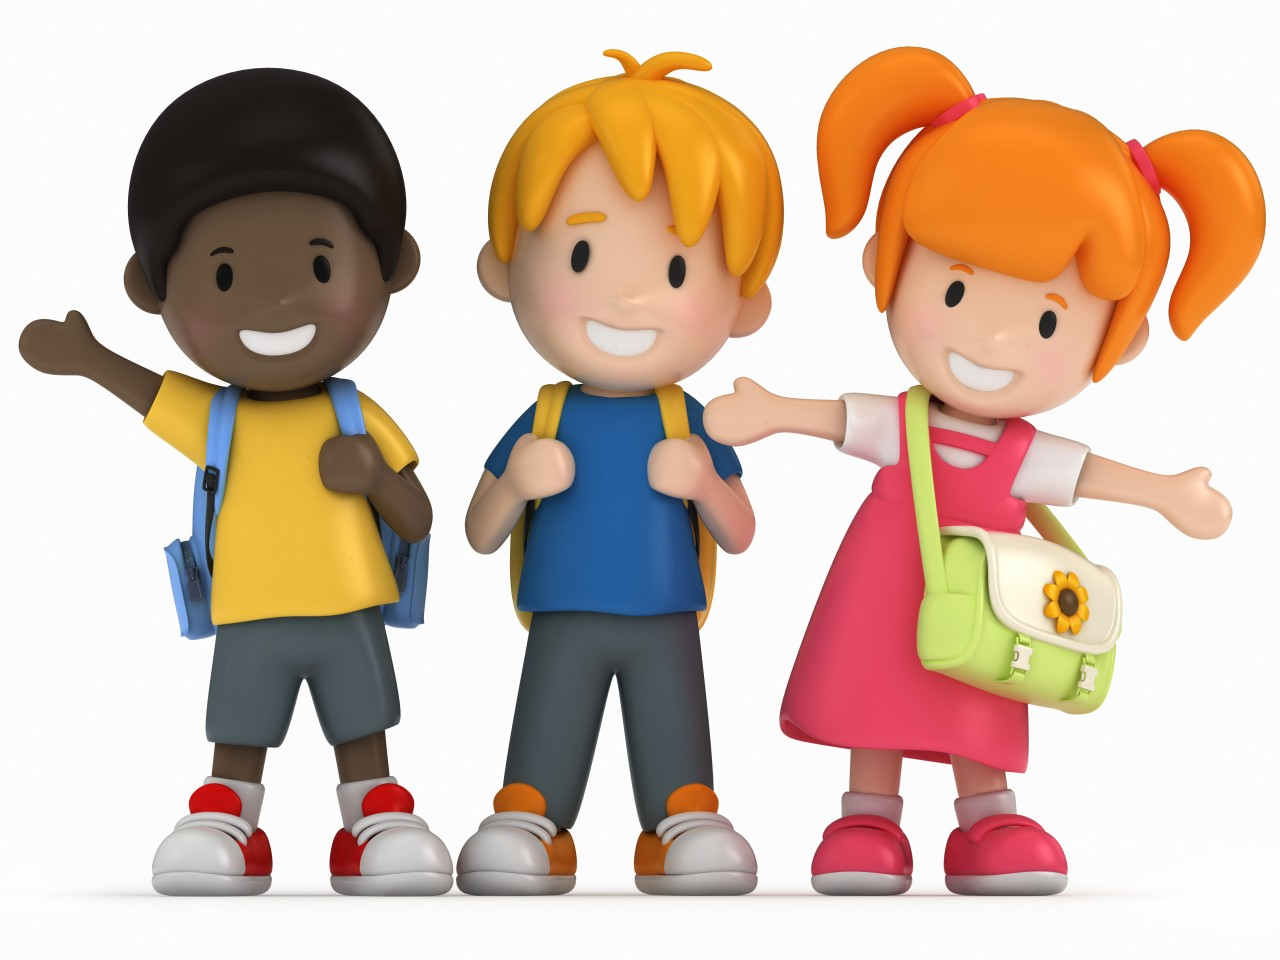 Free Children In School Images, Download Free Clip Art, Free.